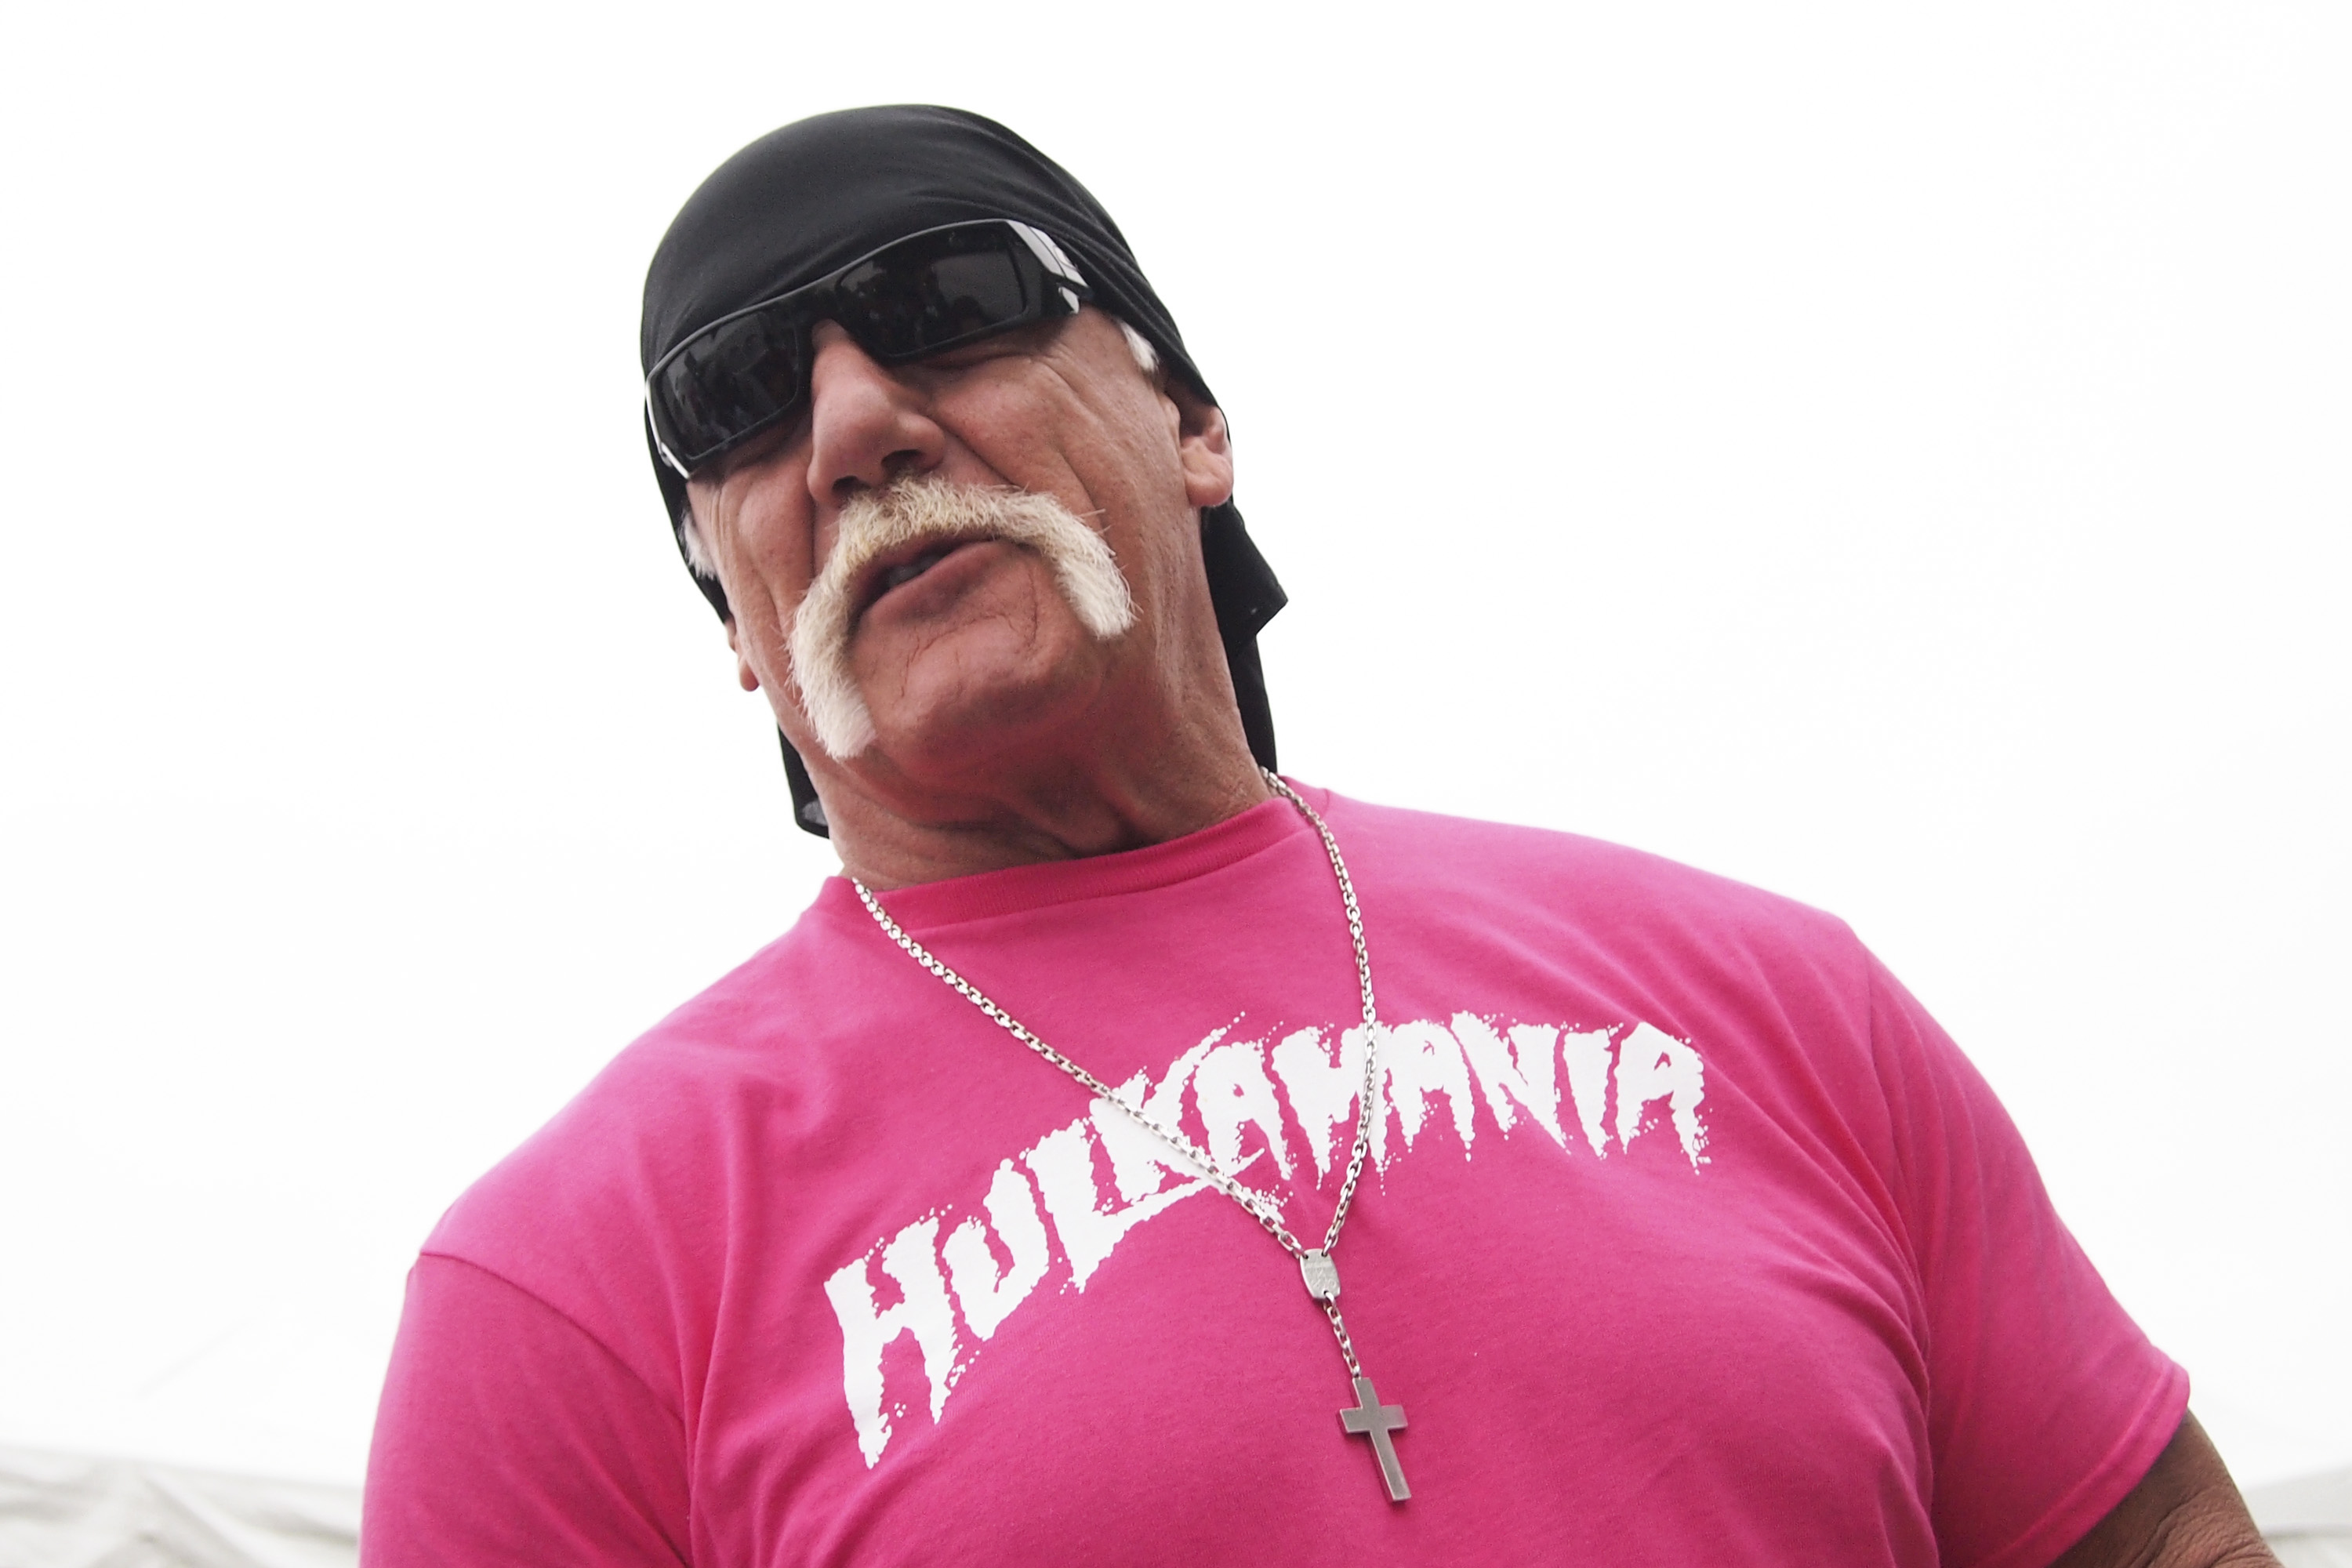 WWE Legend Hulk Hogan attends the 2015 Susan G. Komen D.C. Race for the Cure at The National Mall on May 9, 2015 in Washington DC.